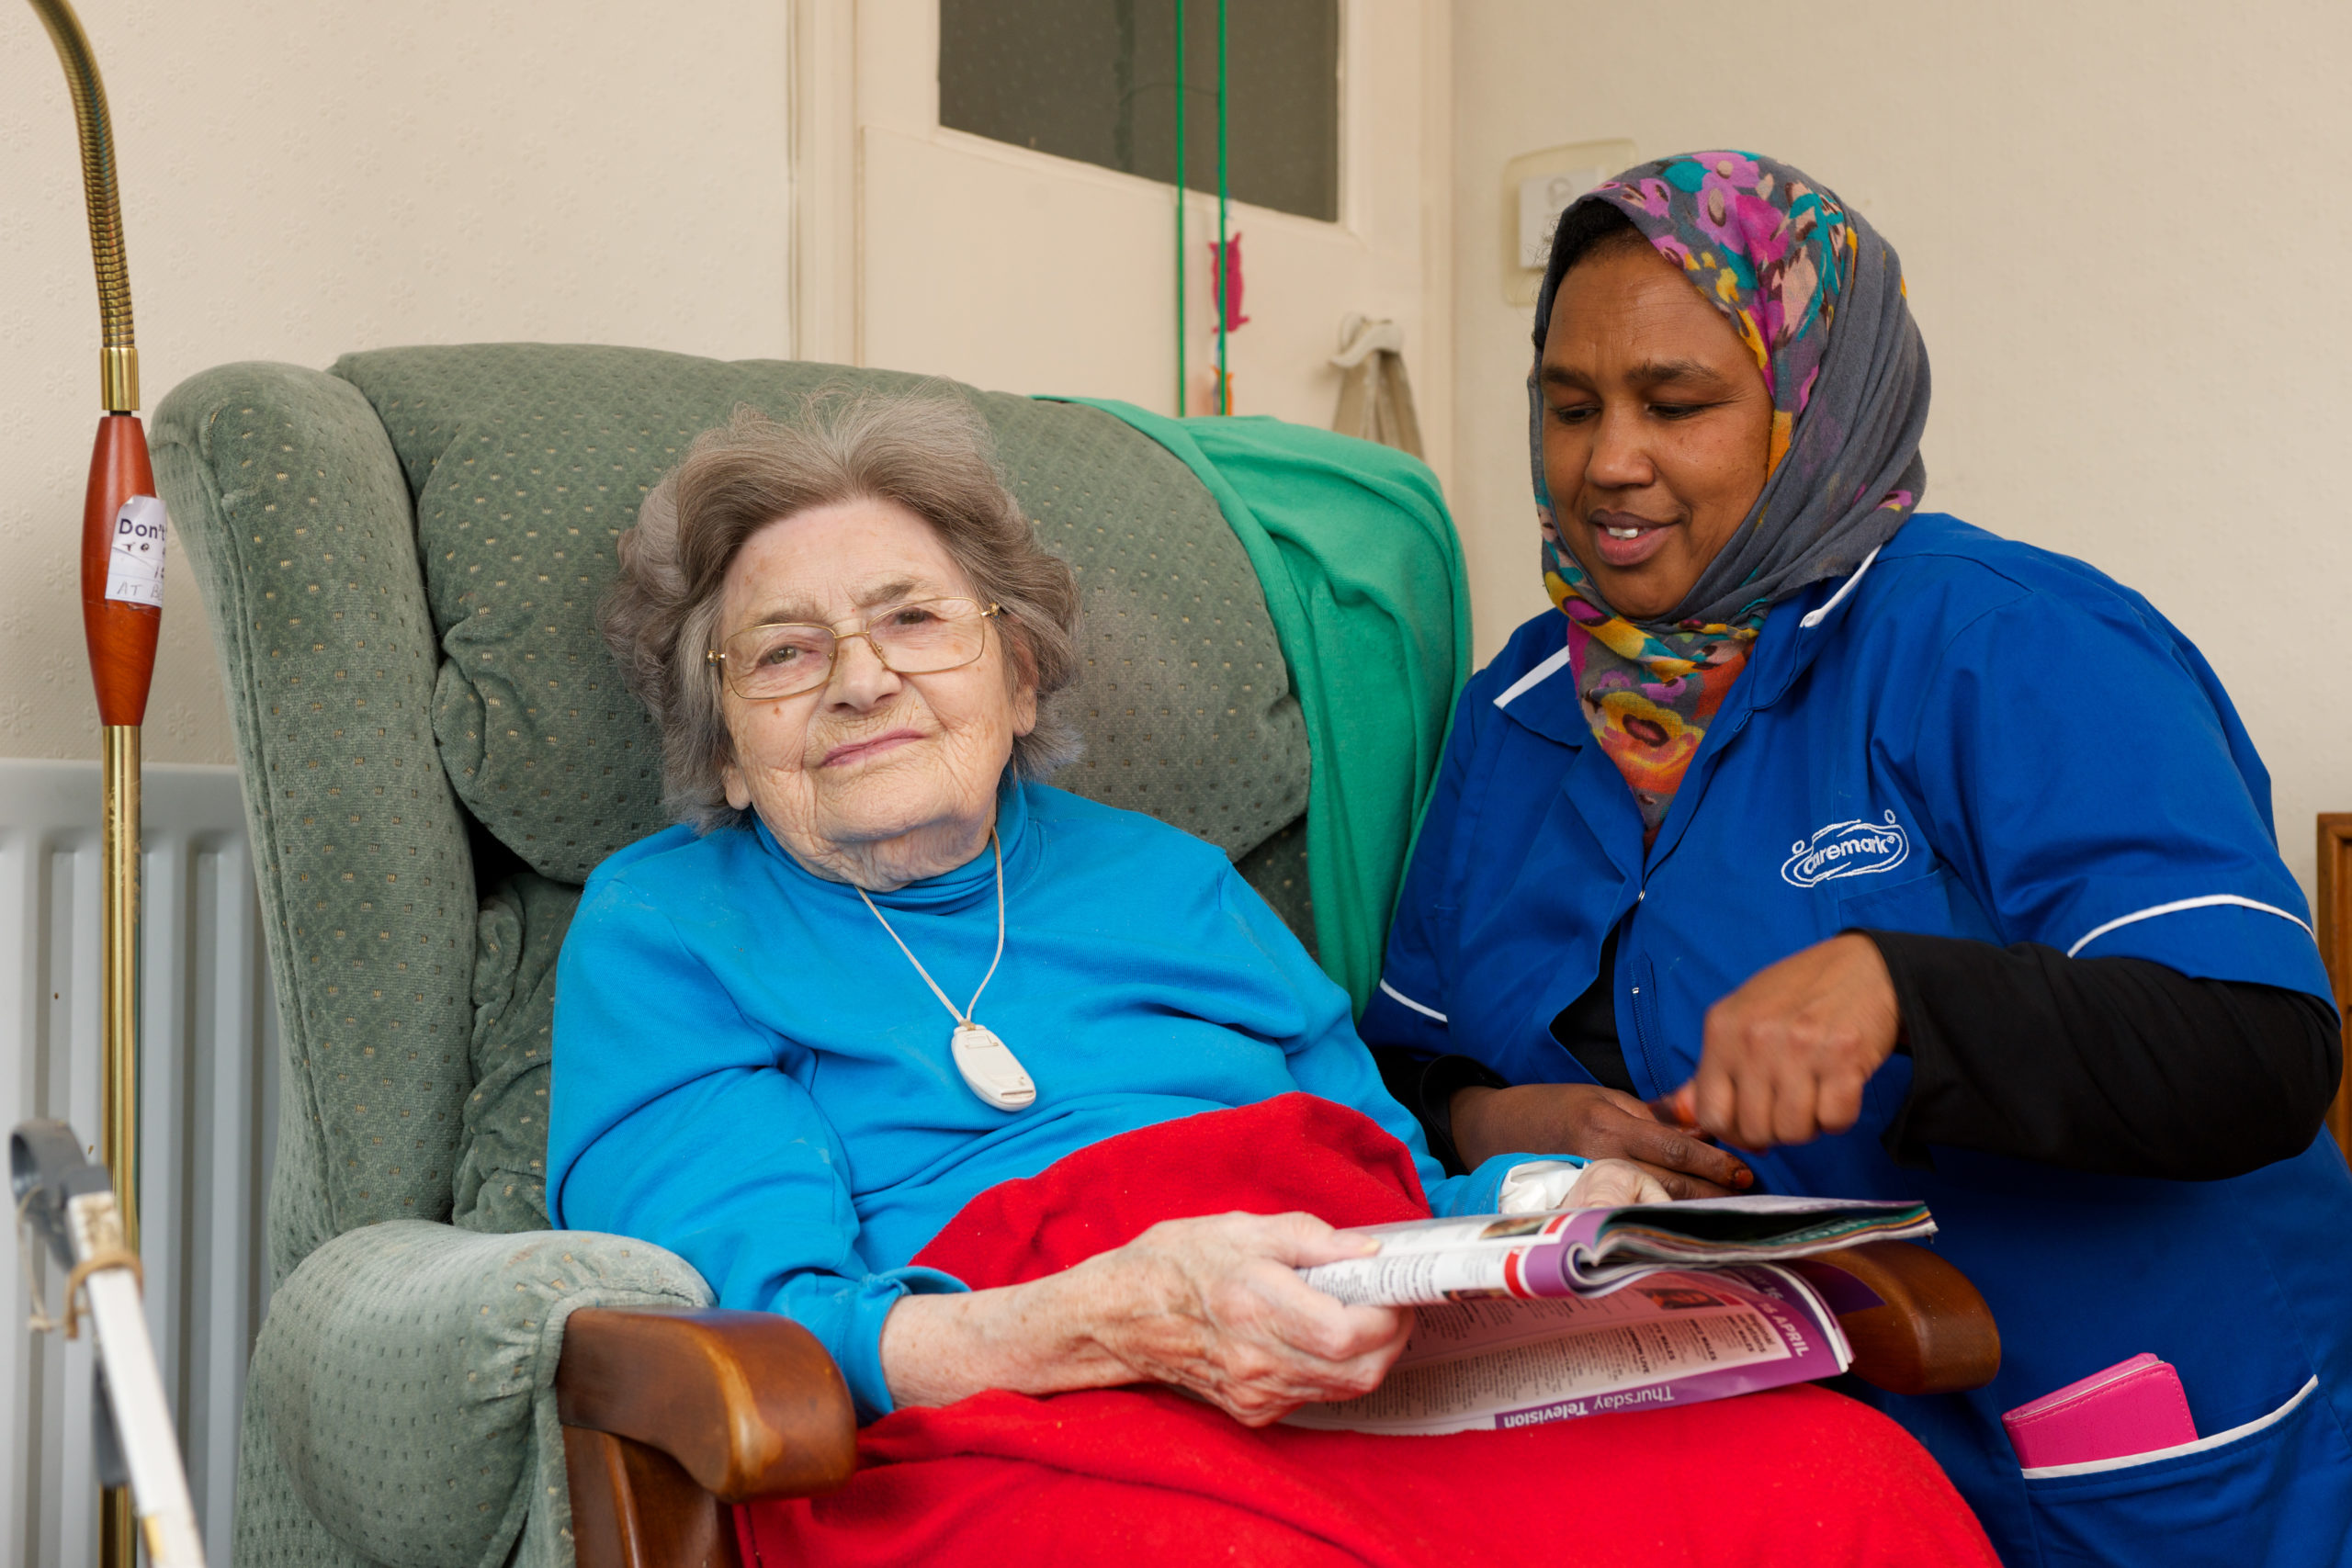 How to Take Care of a Loved One Living with Dementia